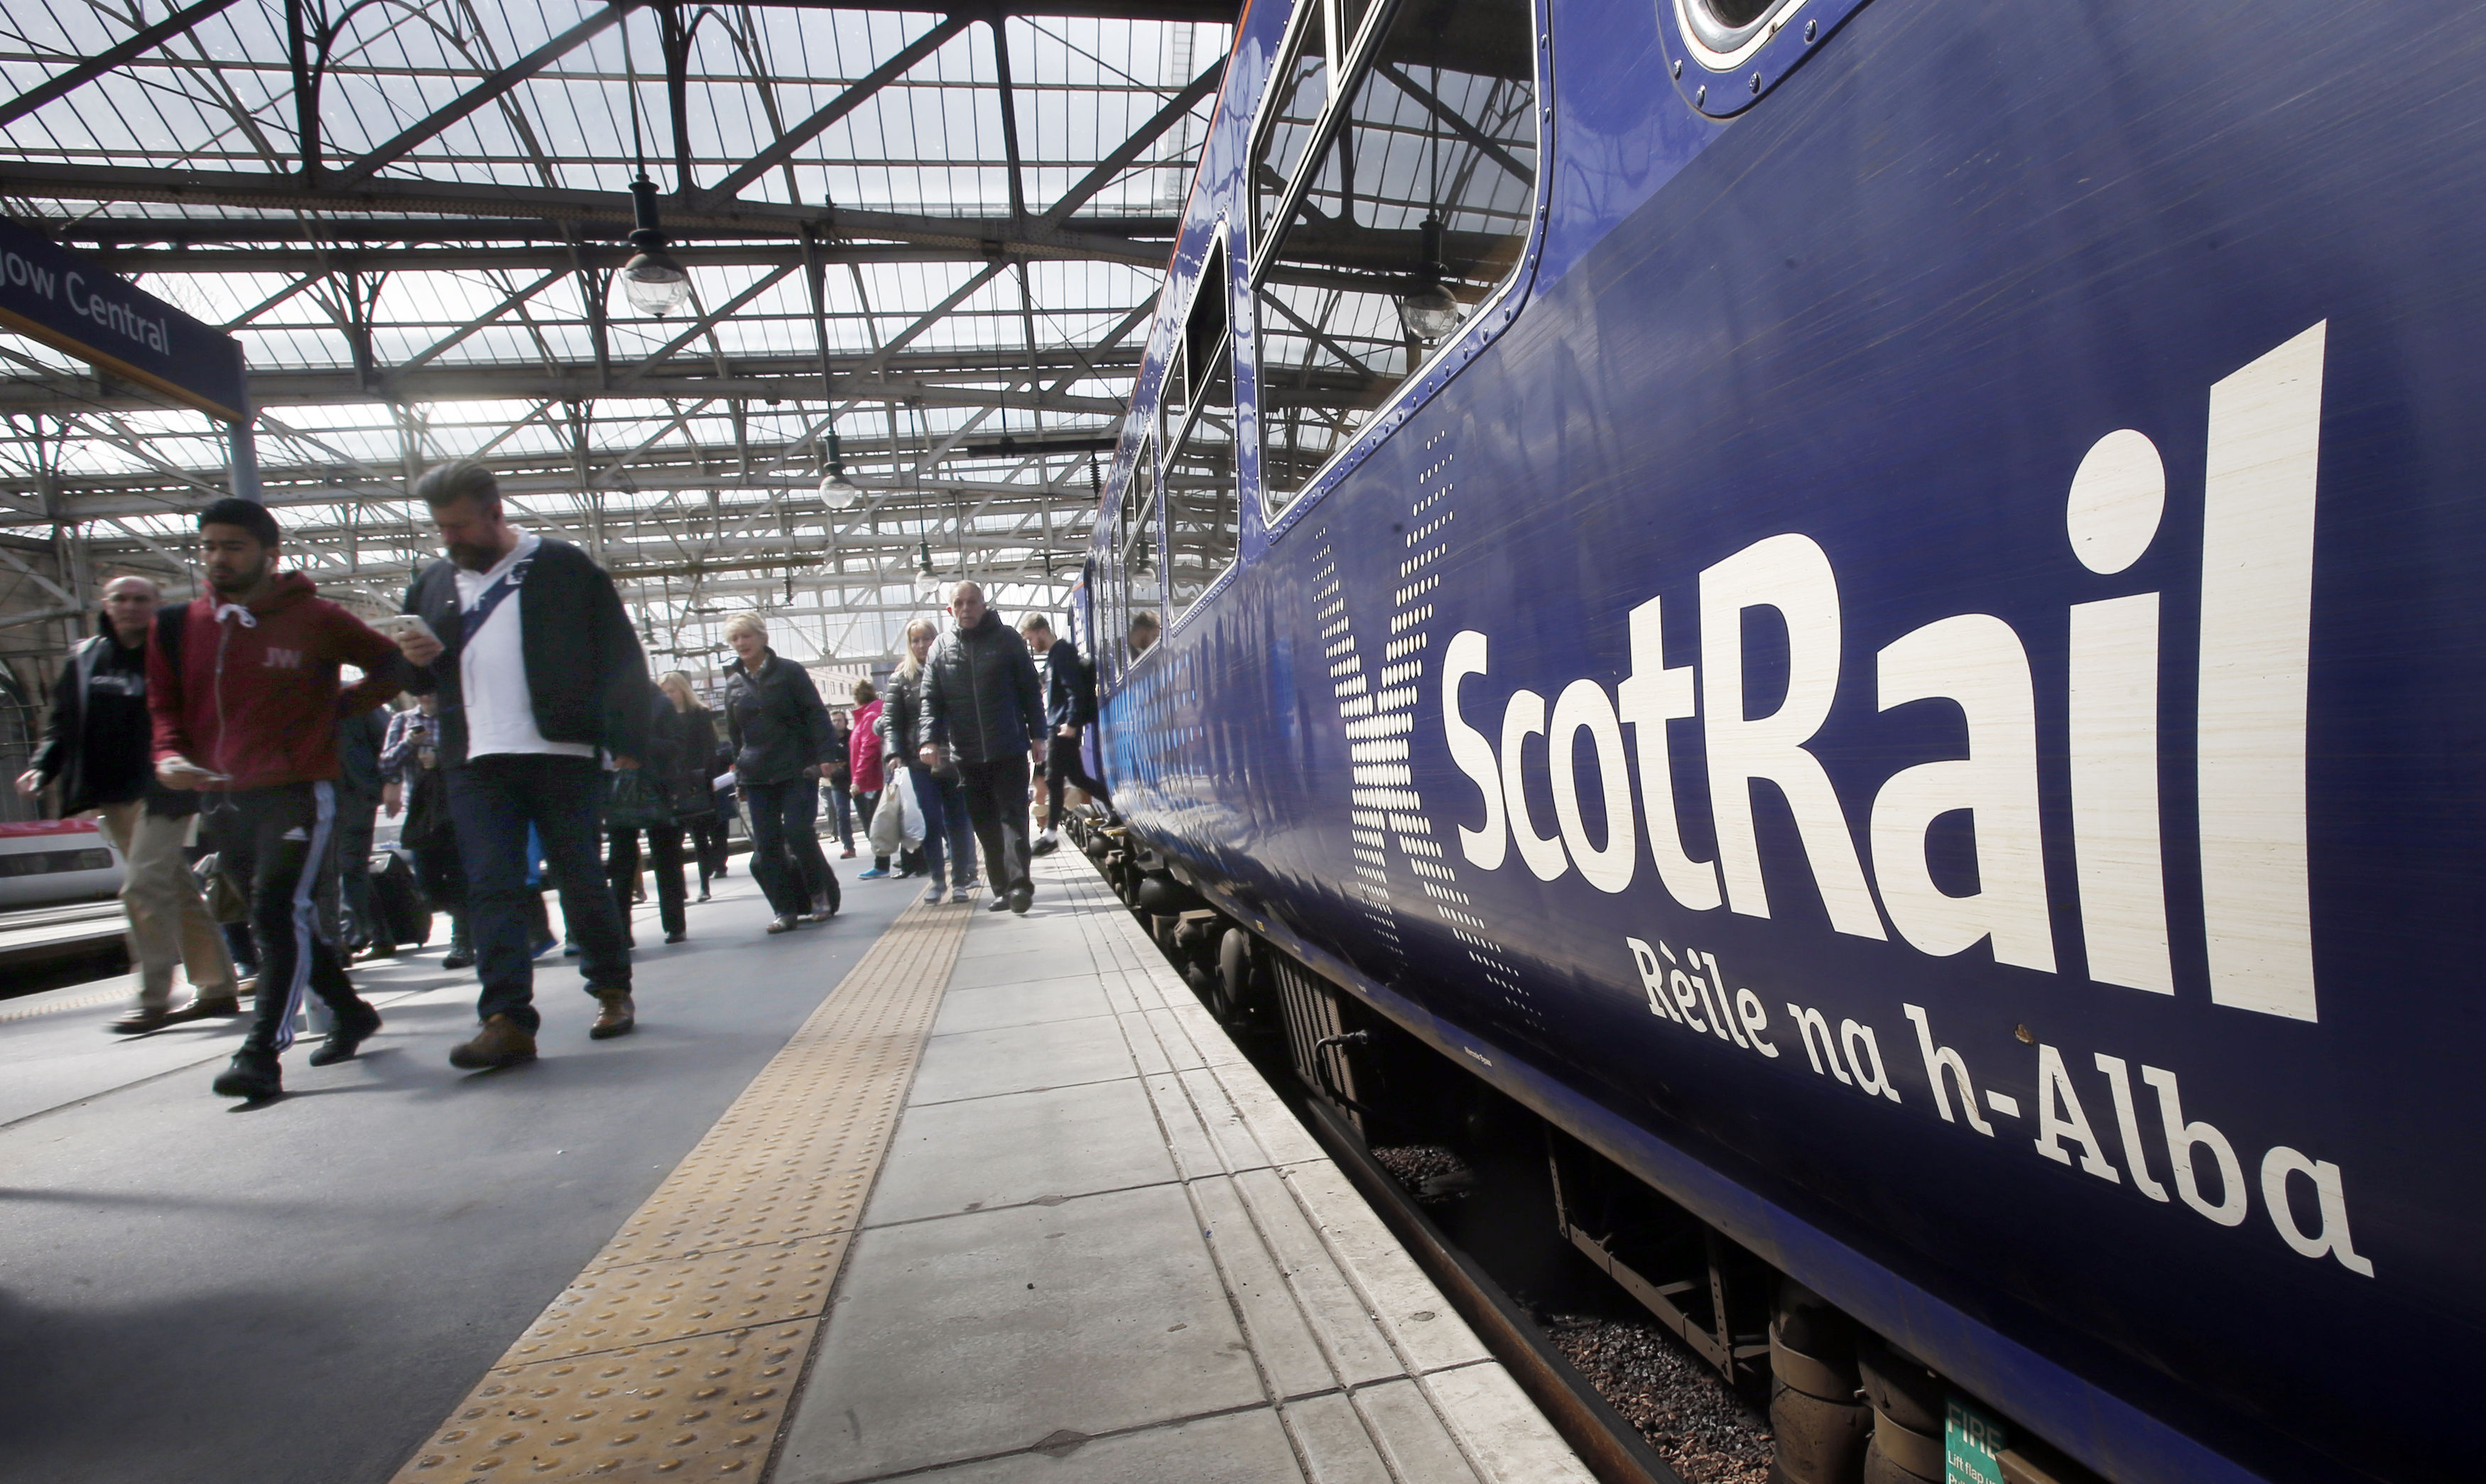 ScotRail trains have been affected (stock image).